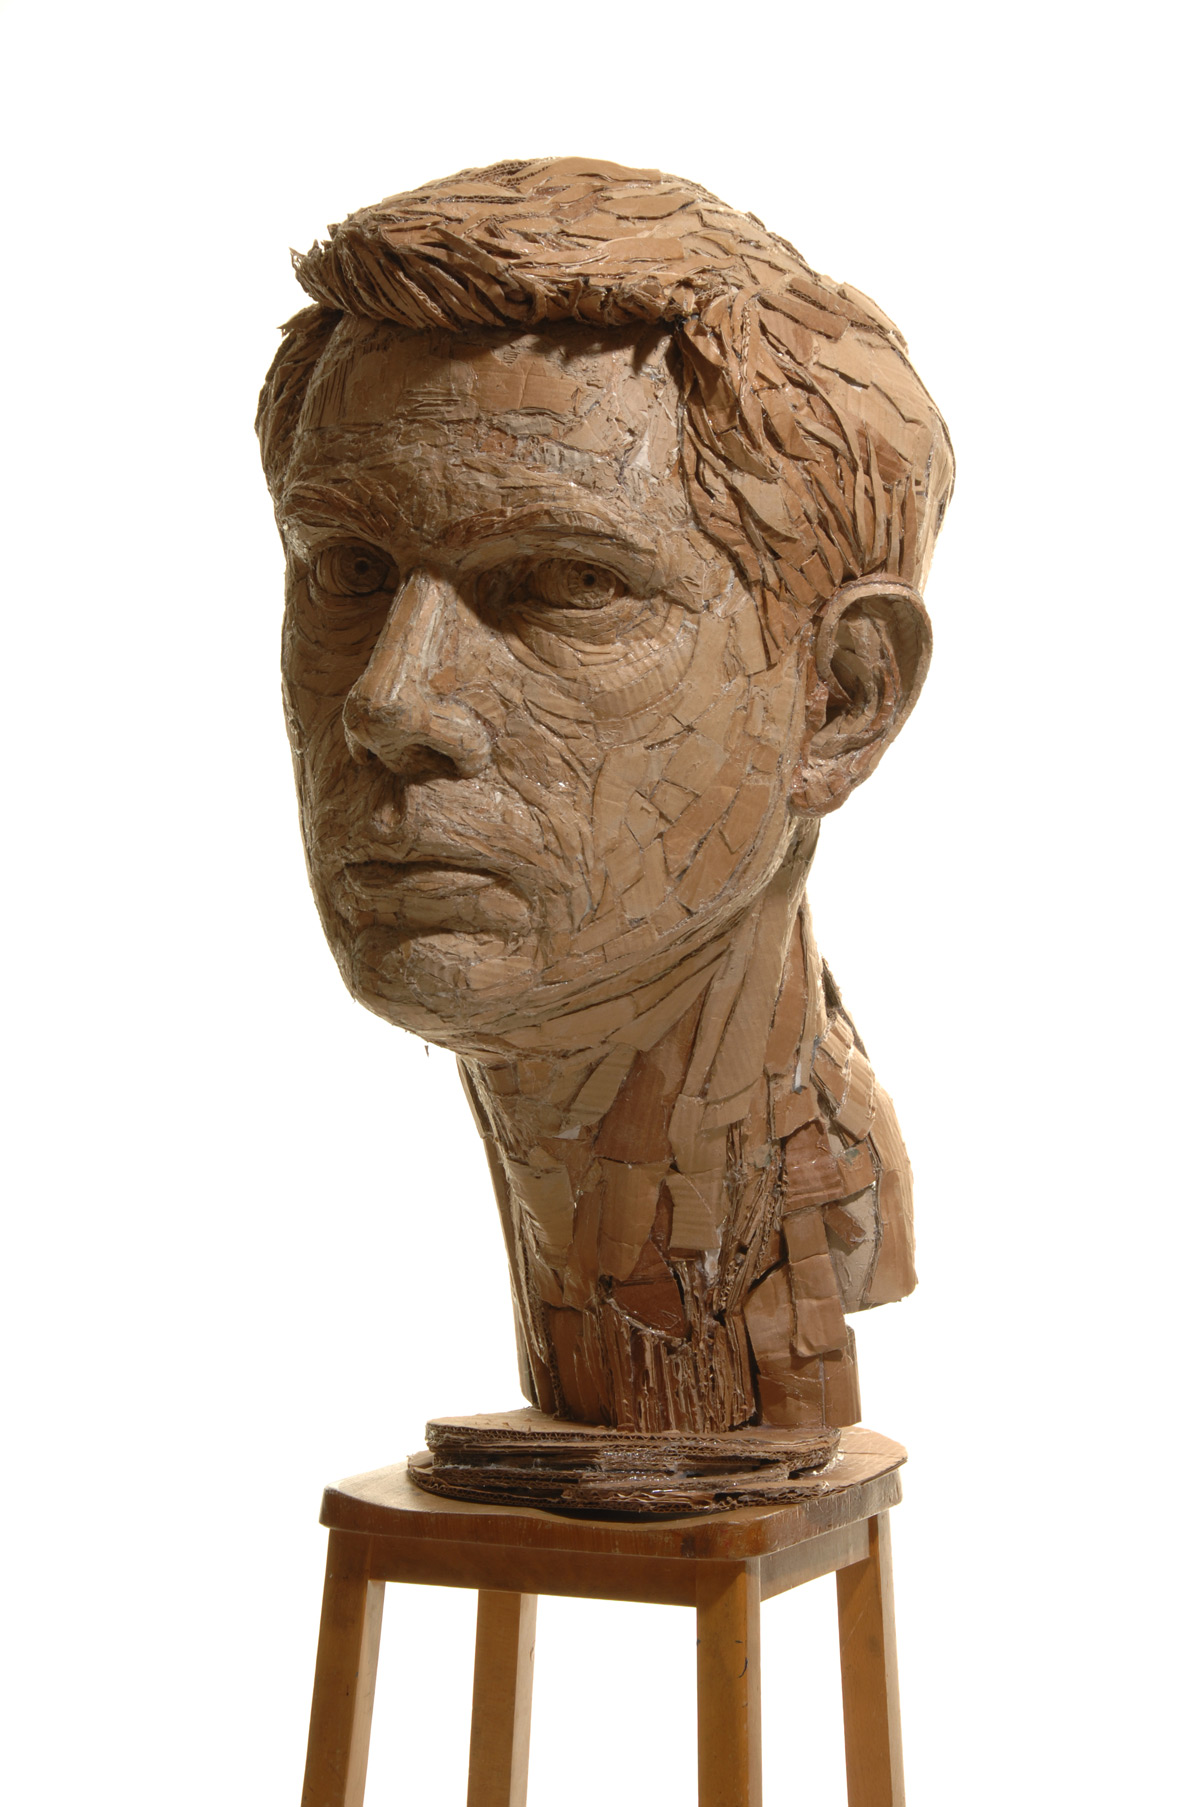 Figurative Sculptures Formed From Recycled Cardboard by James Lake ...